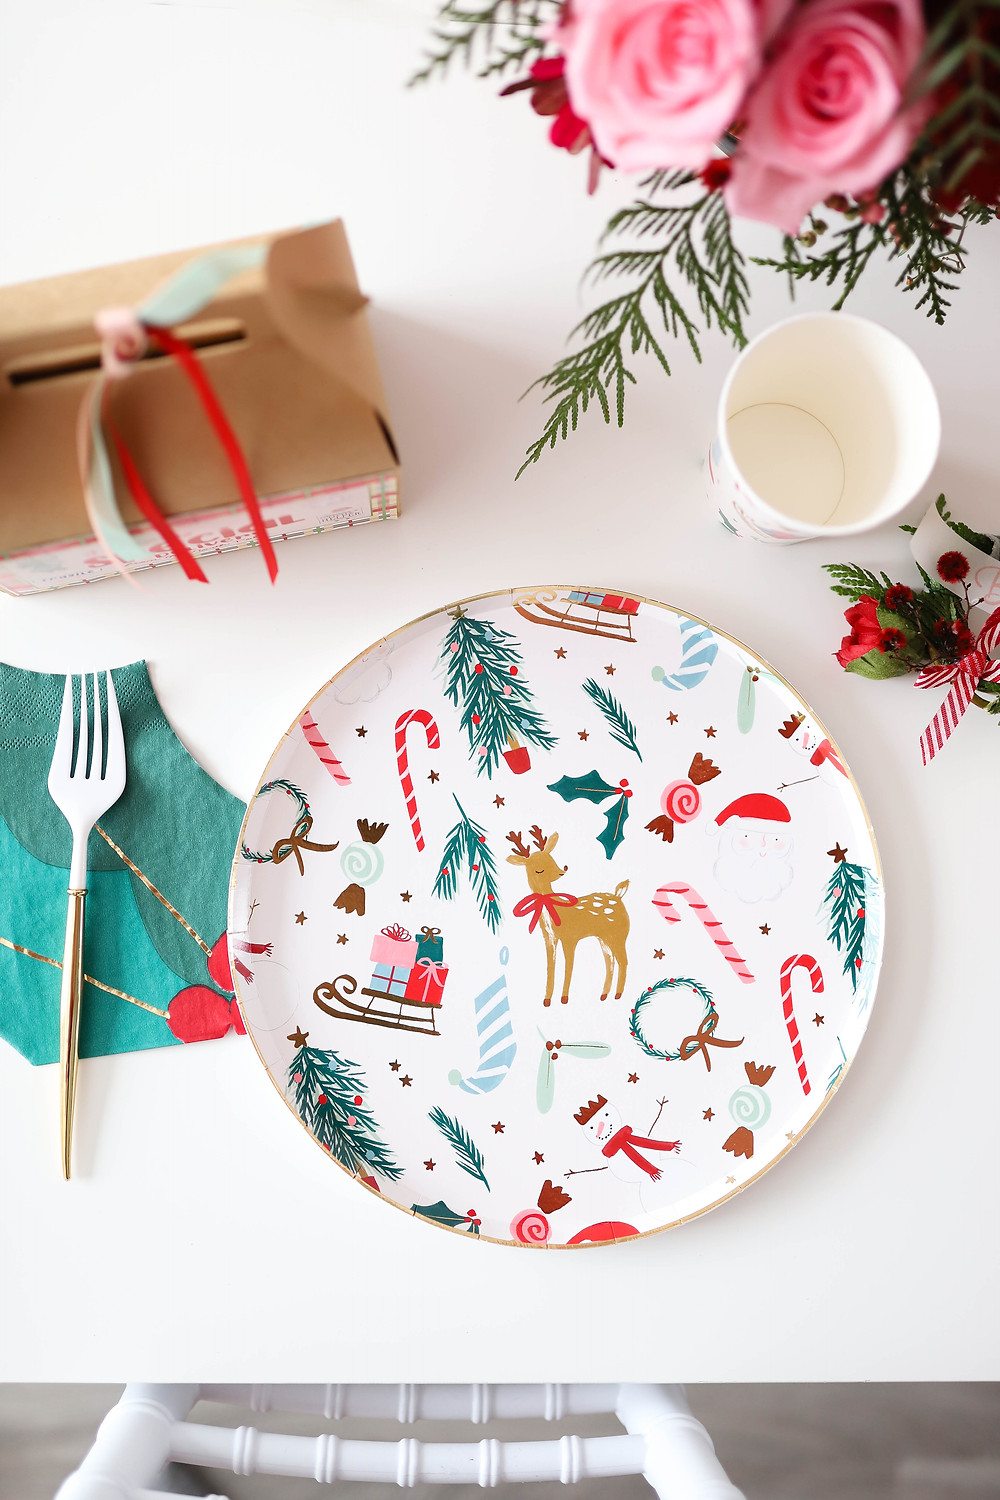 A christmas paper plate on a white table sitting next to holiday flowers, mistletoe napkins and a gift box.